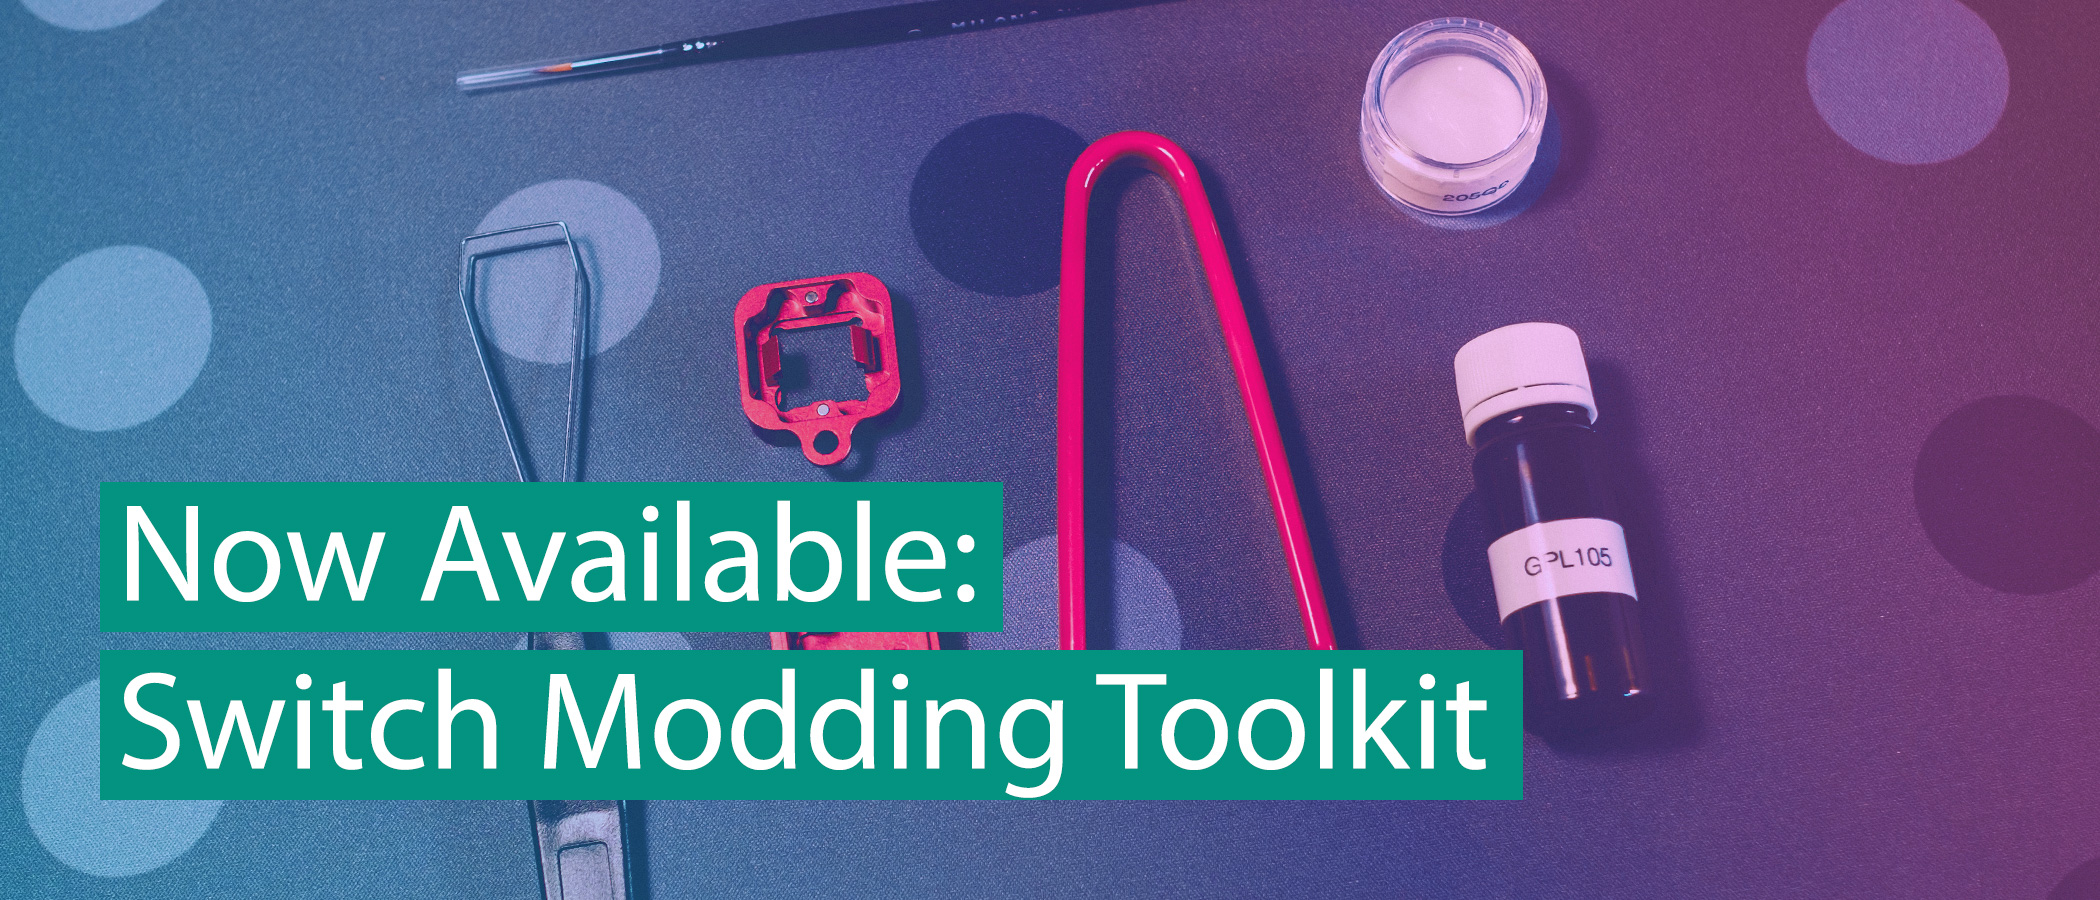 Switch Modding Toolkit Now Available